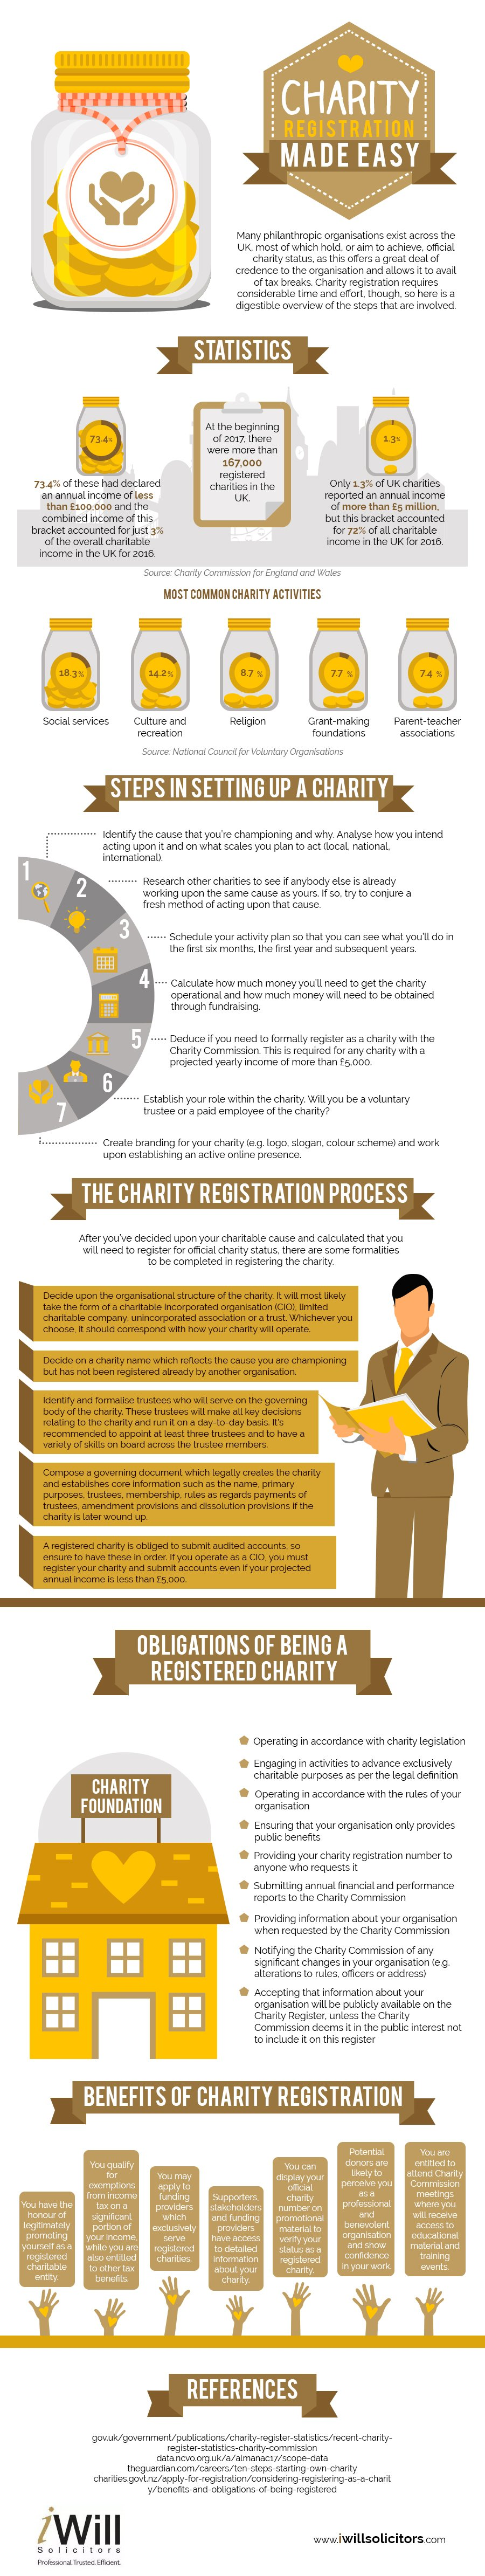 Charity Registration